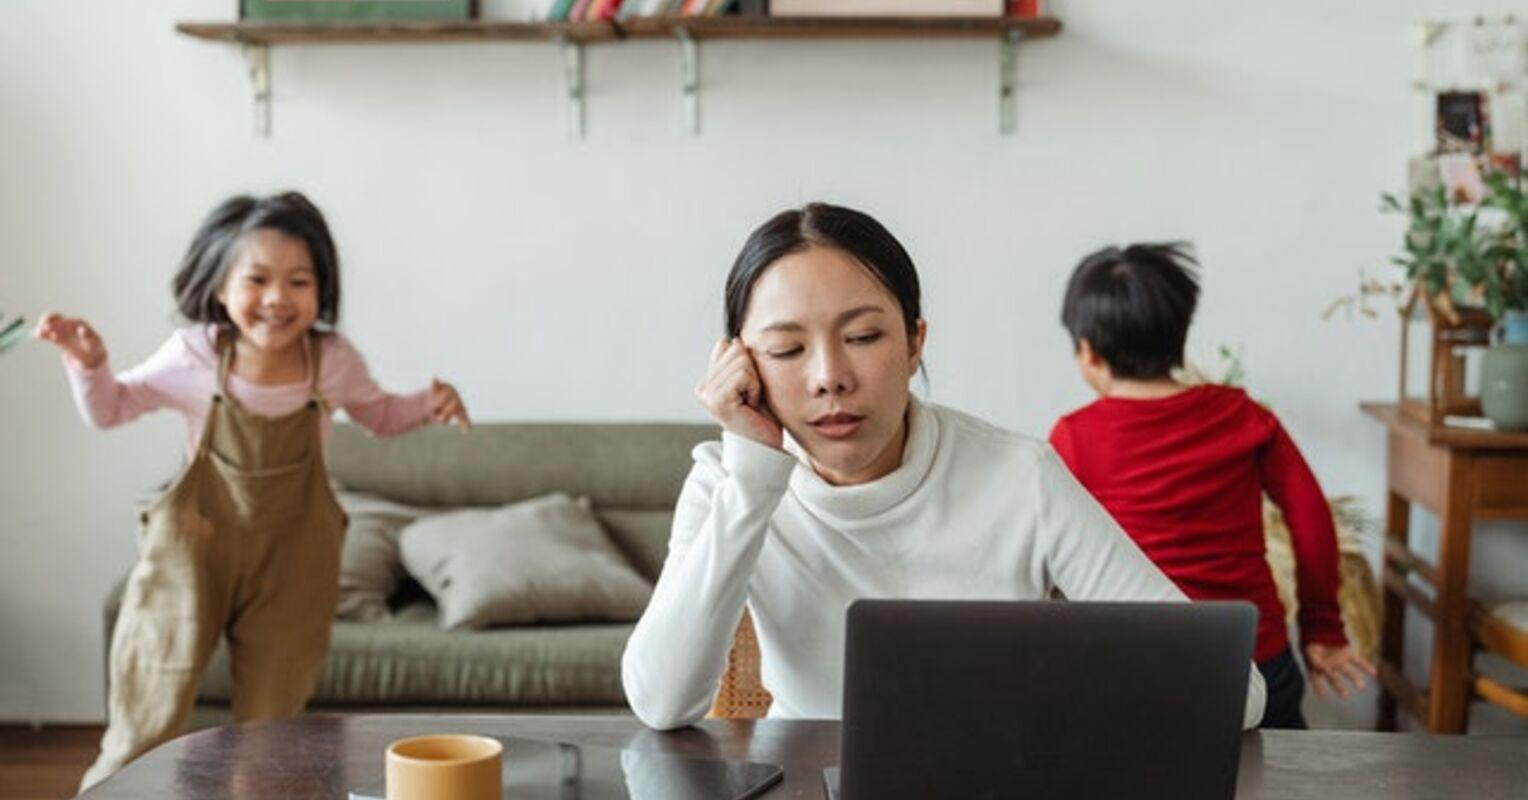 The Impact of COVID-19 on Parental Burnout